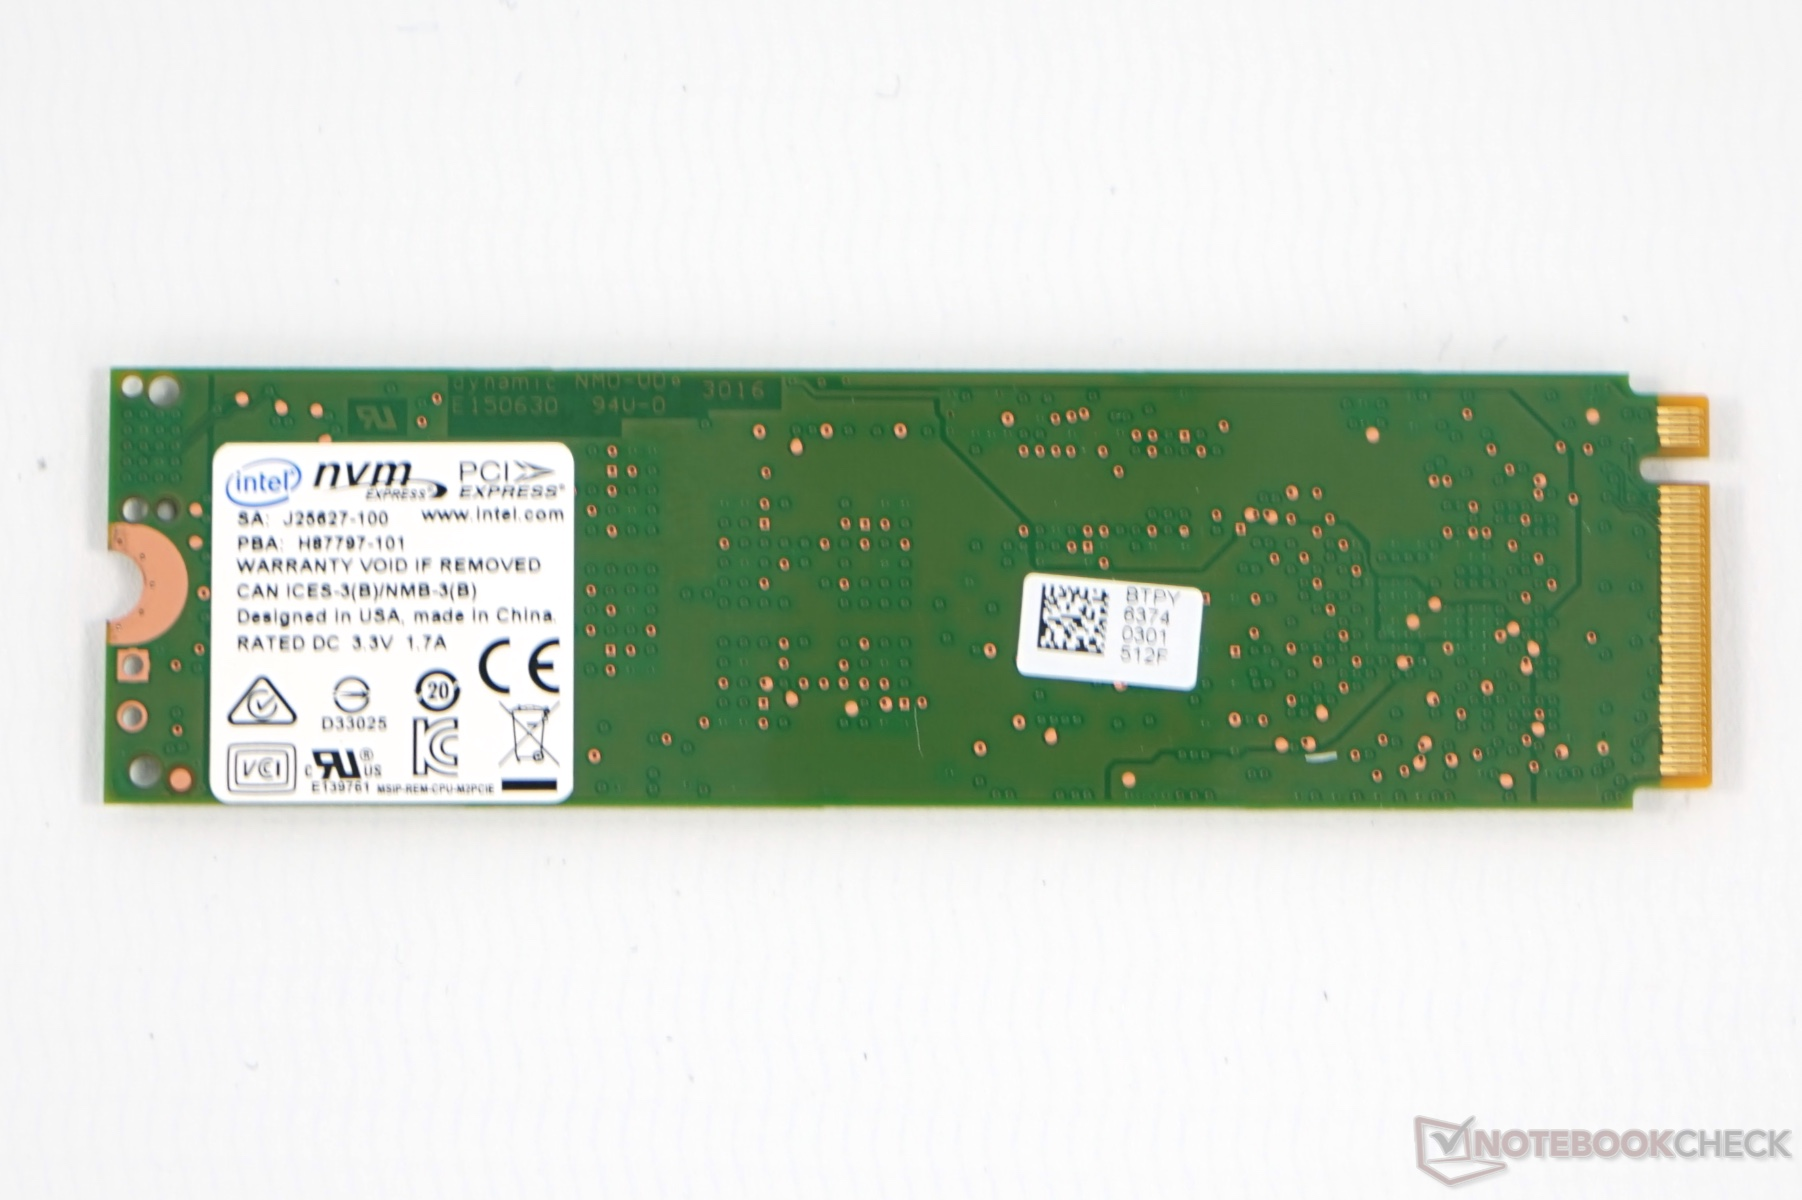 Intel SSD 600p 512 GB Review: The Entry-Level NVMe SSD